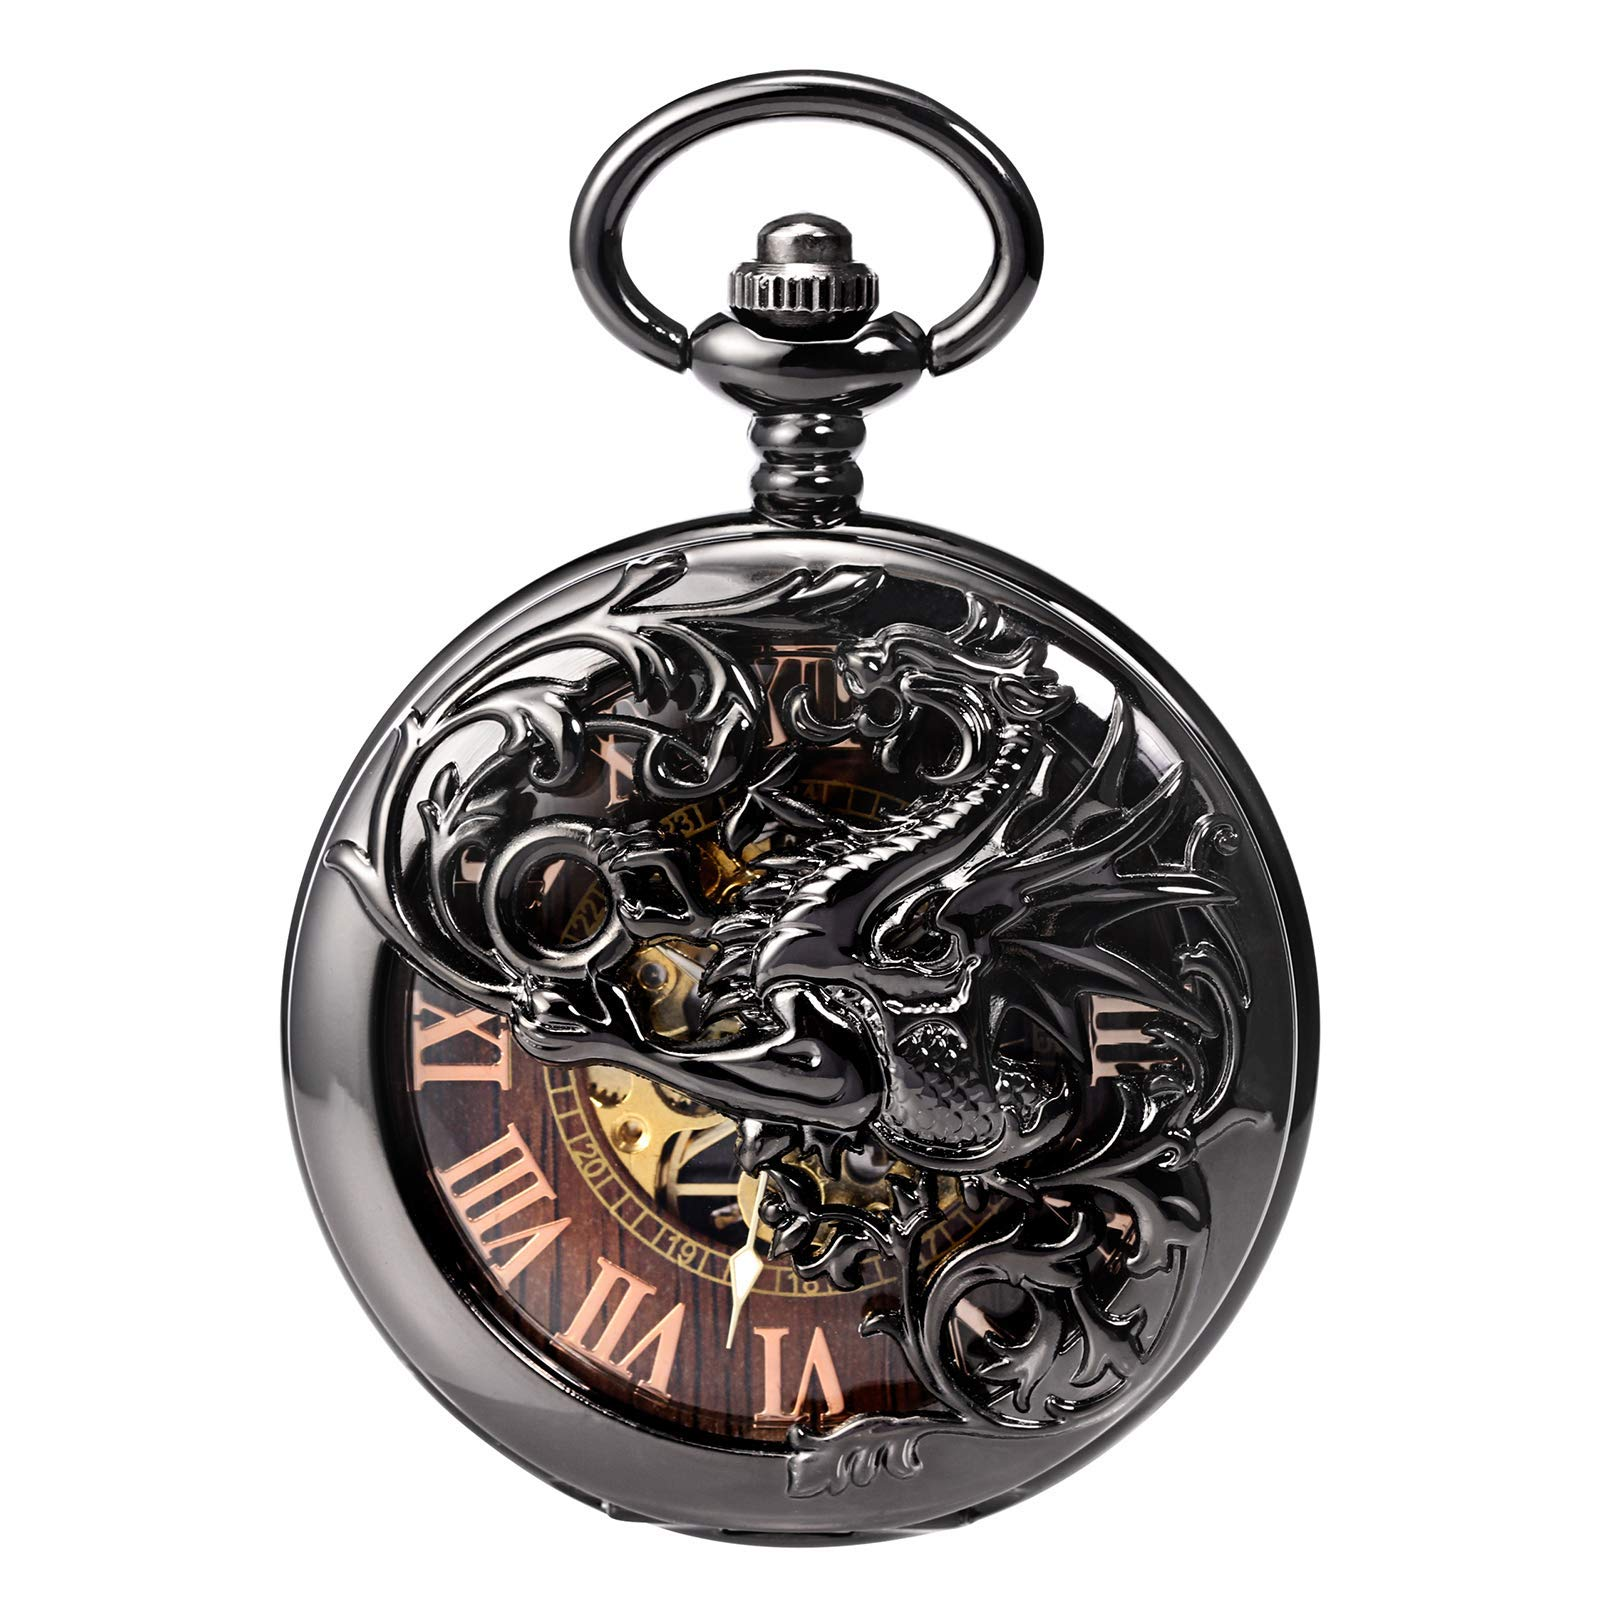 Treeweto Antique Dragon Mechanical Skeleton Pocket Watch with Chain by TREEWETO (Image #3)